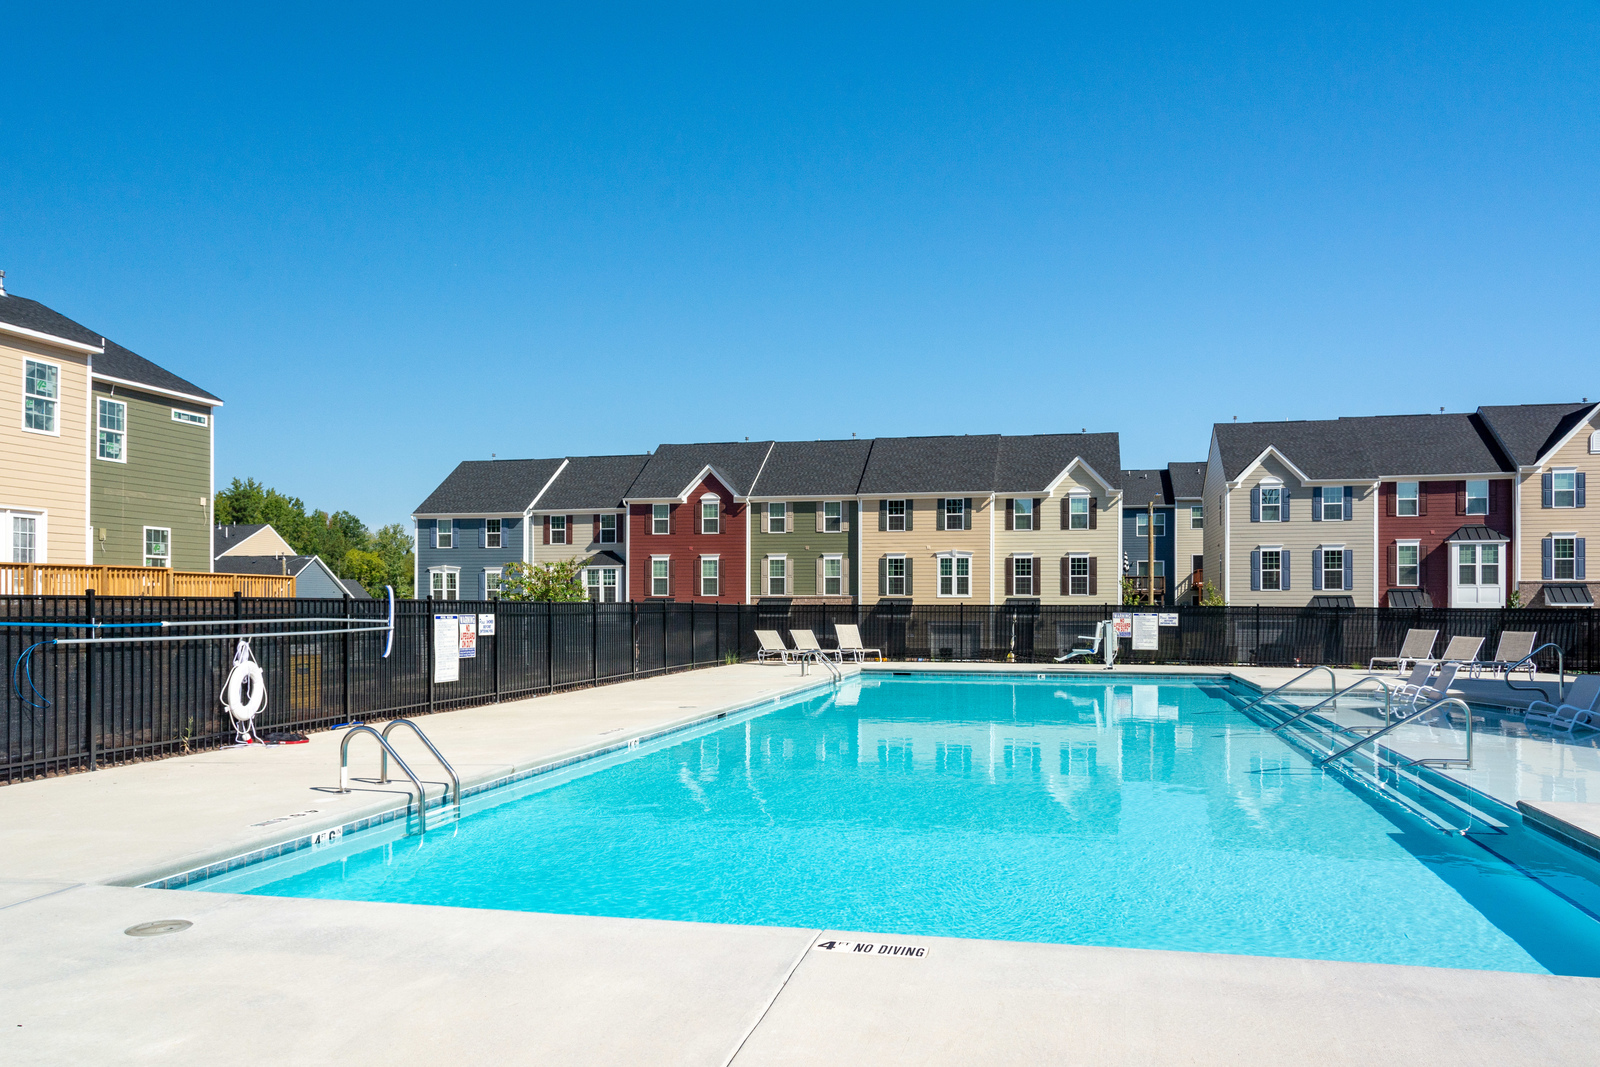 New Homes for sale at West Brier Townes At Alexander Park in Durham